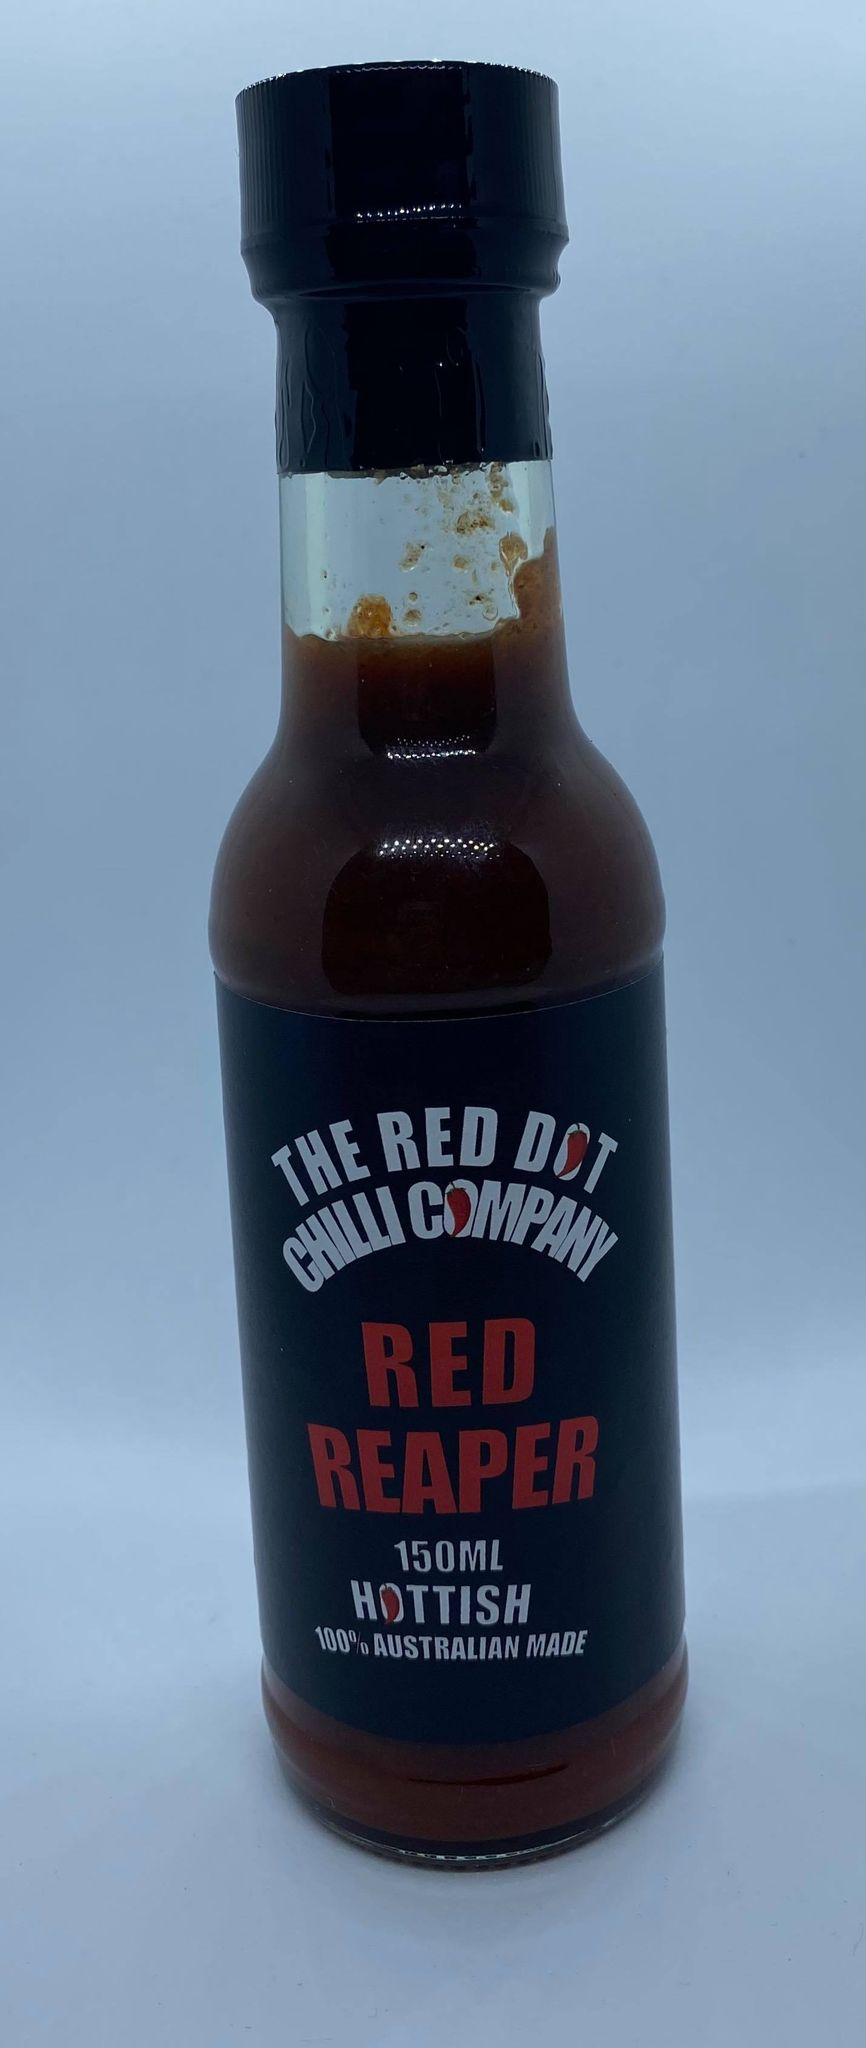 The Red Dot Chilli Company - Red Reaper